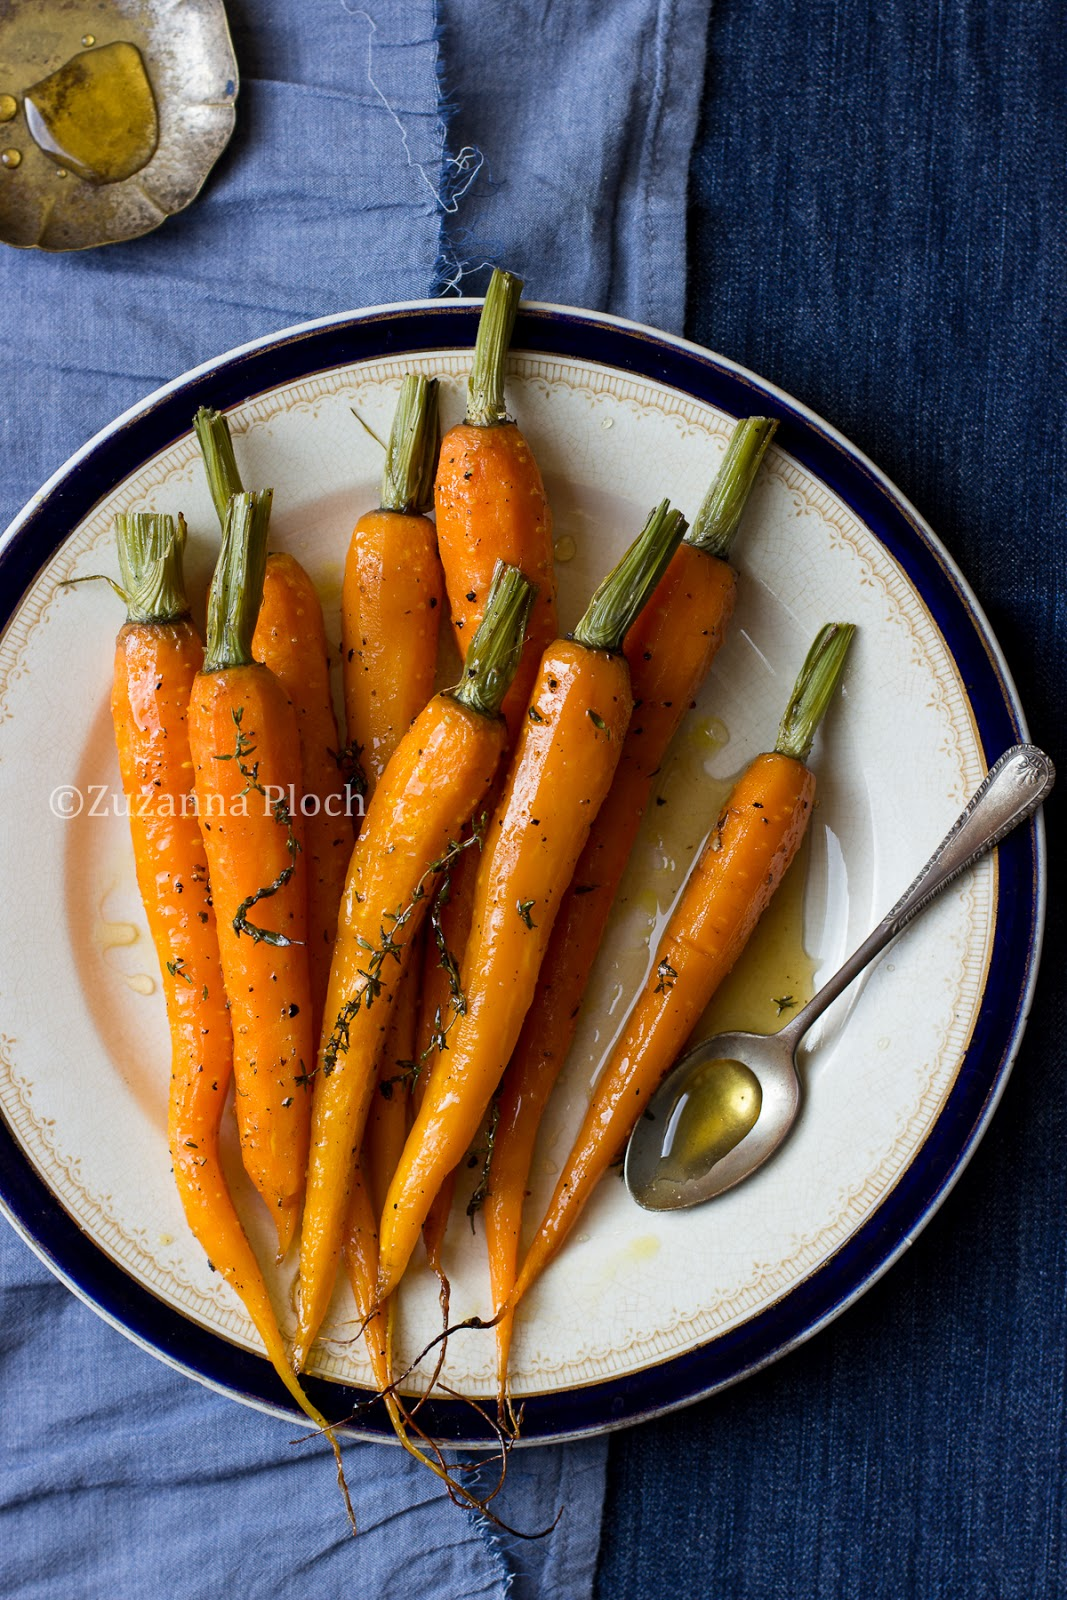 Carrots in lemon and honey - Food photography by Zuzanna Ploch, fotografia kulinarna